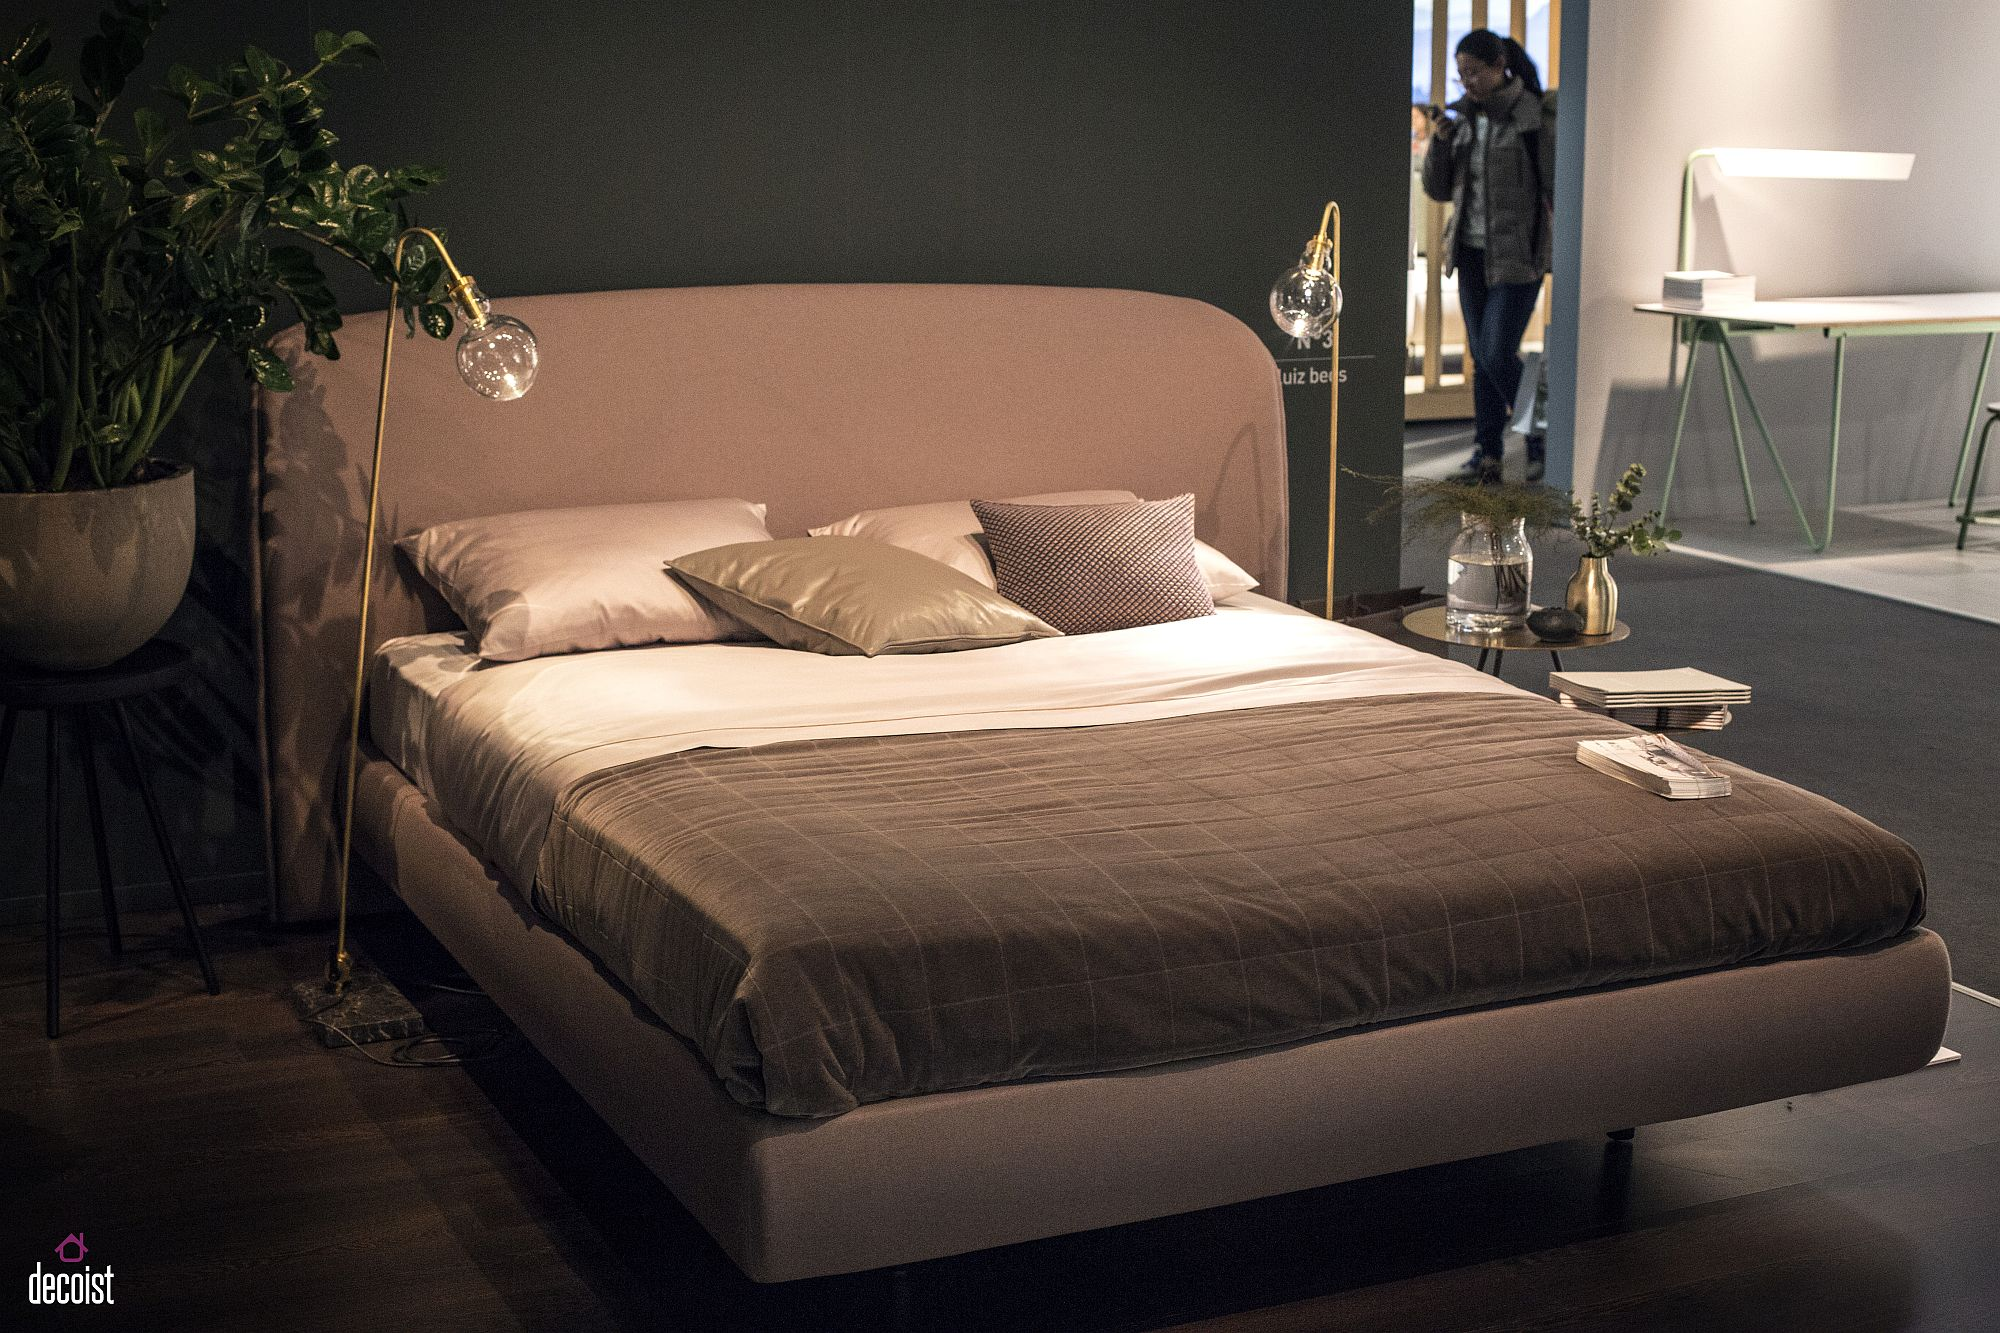 Twin-floor-lamps-replace-traditional-bedside-tables-here